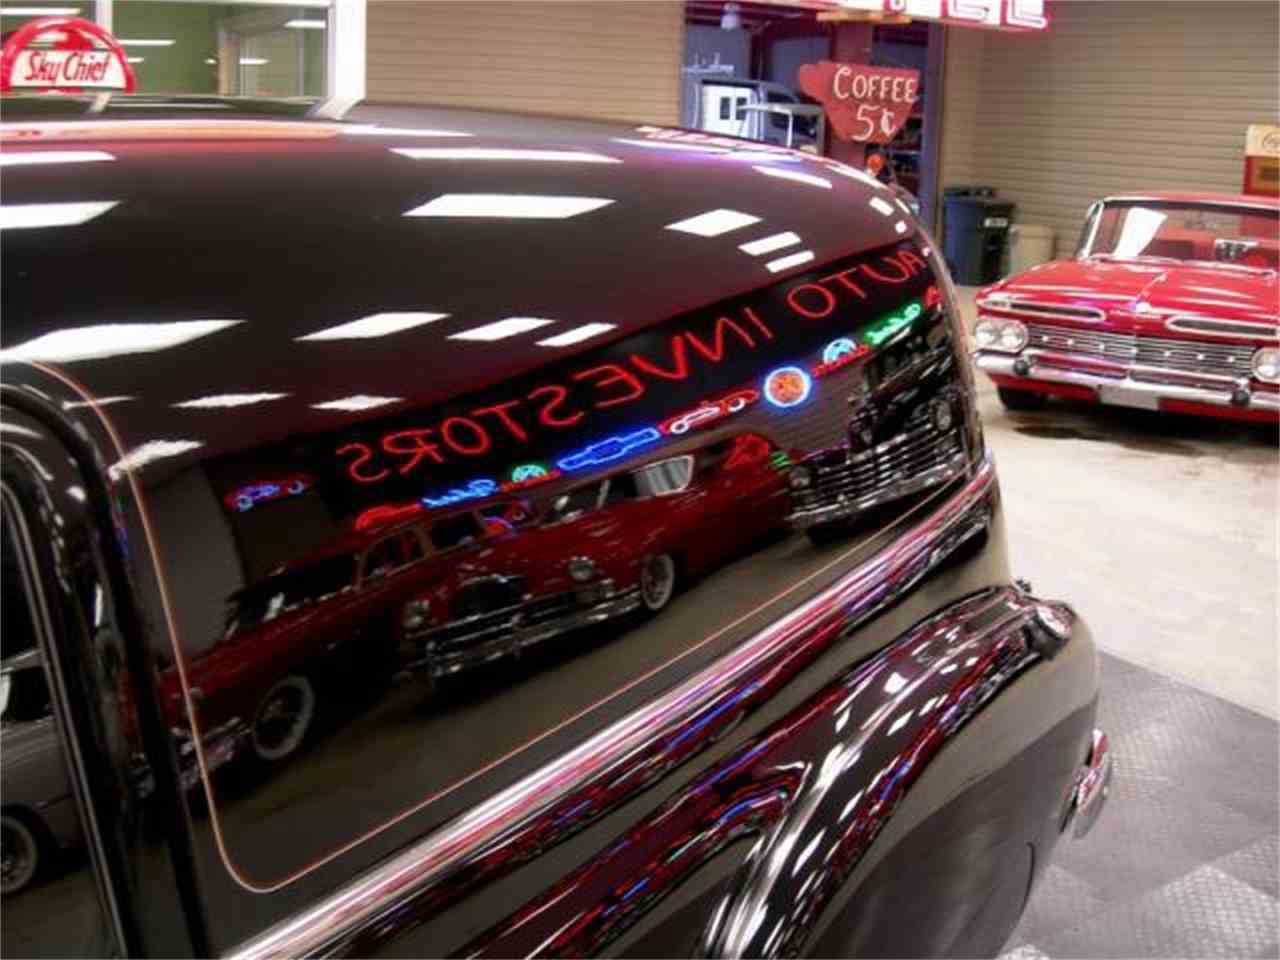 Large Picture of 1952 Chevrolet Sedan Delivery located in Alabama - $49,995.00 Offered by Auto Investors - F0T1